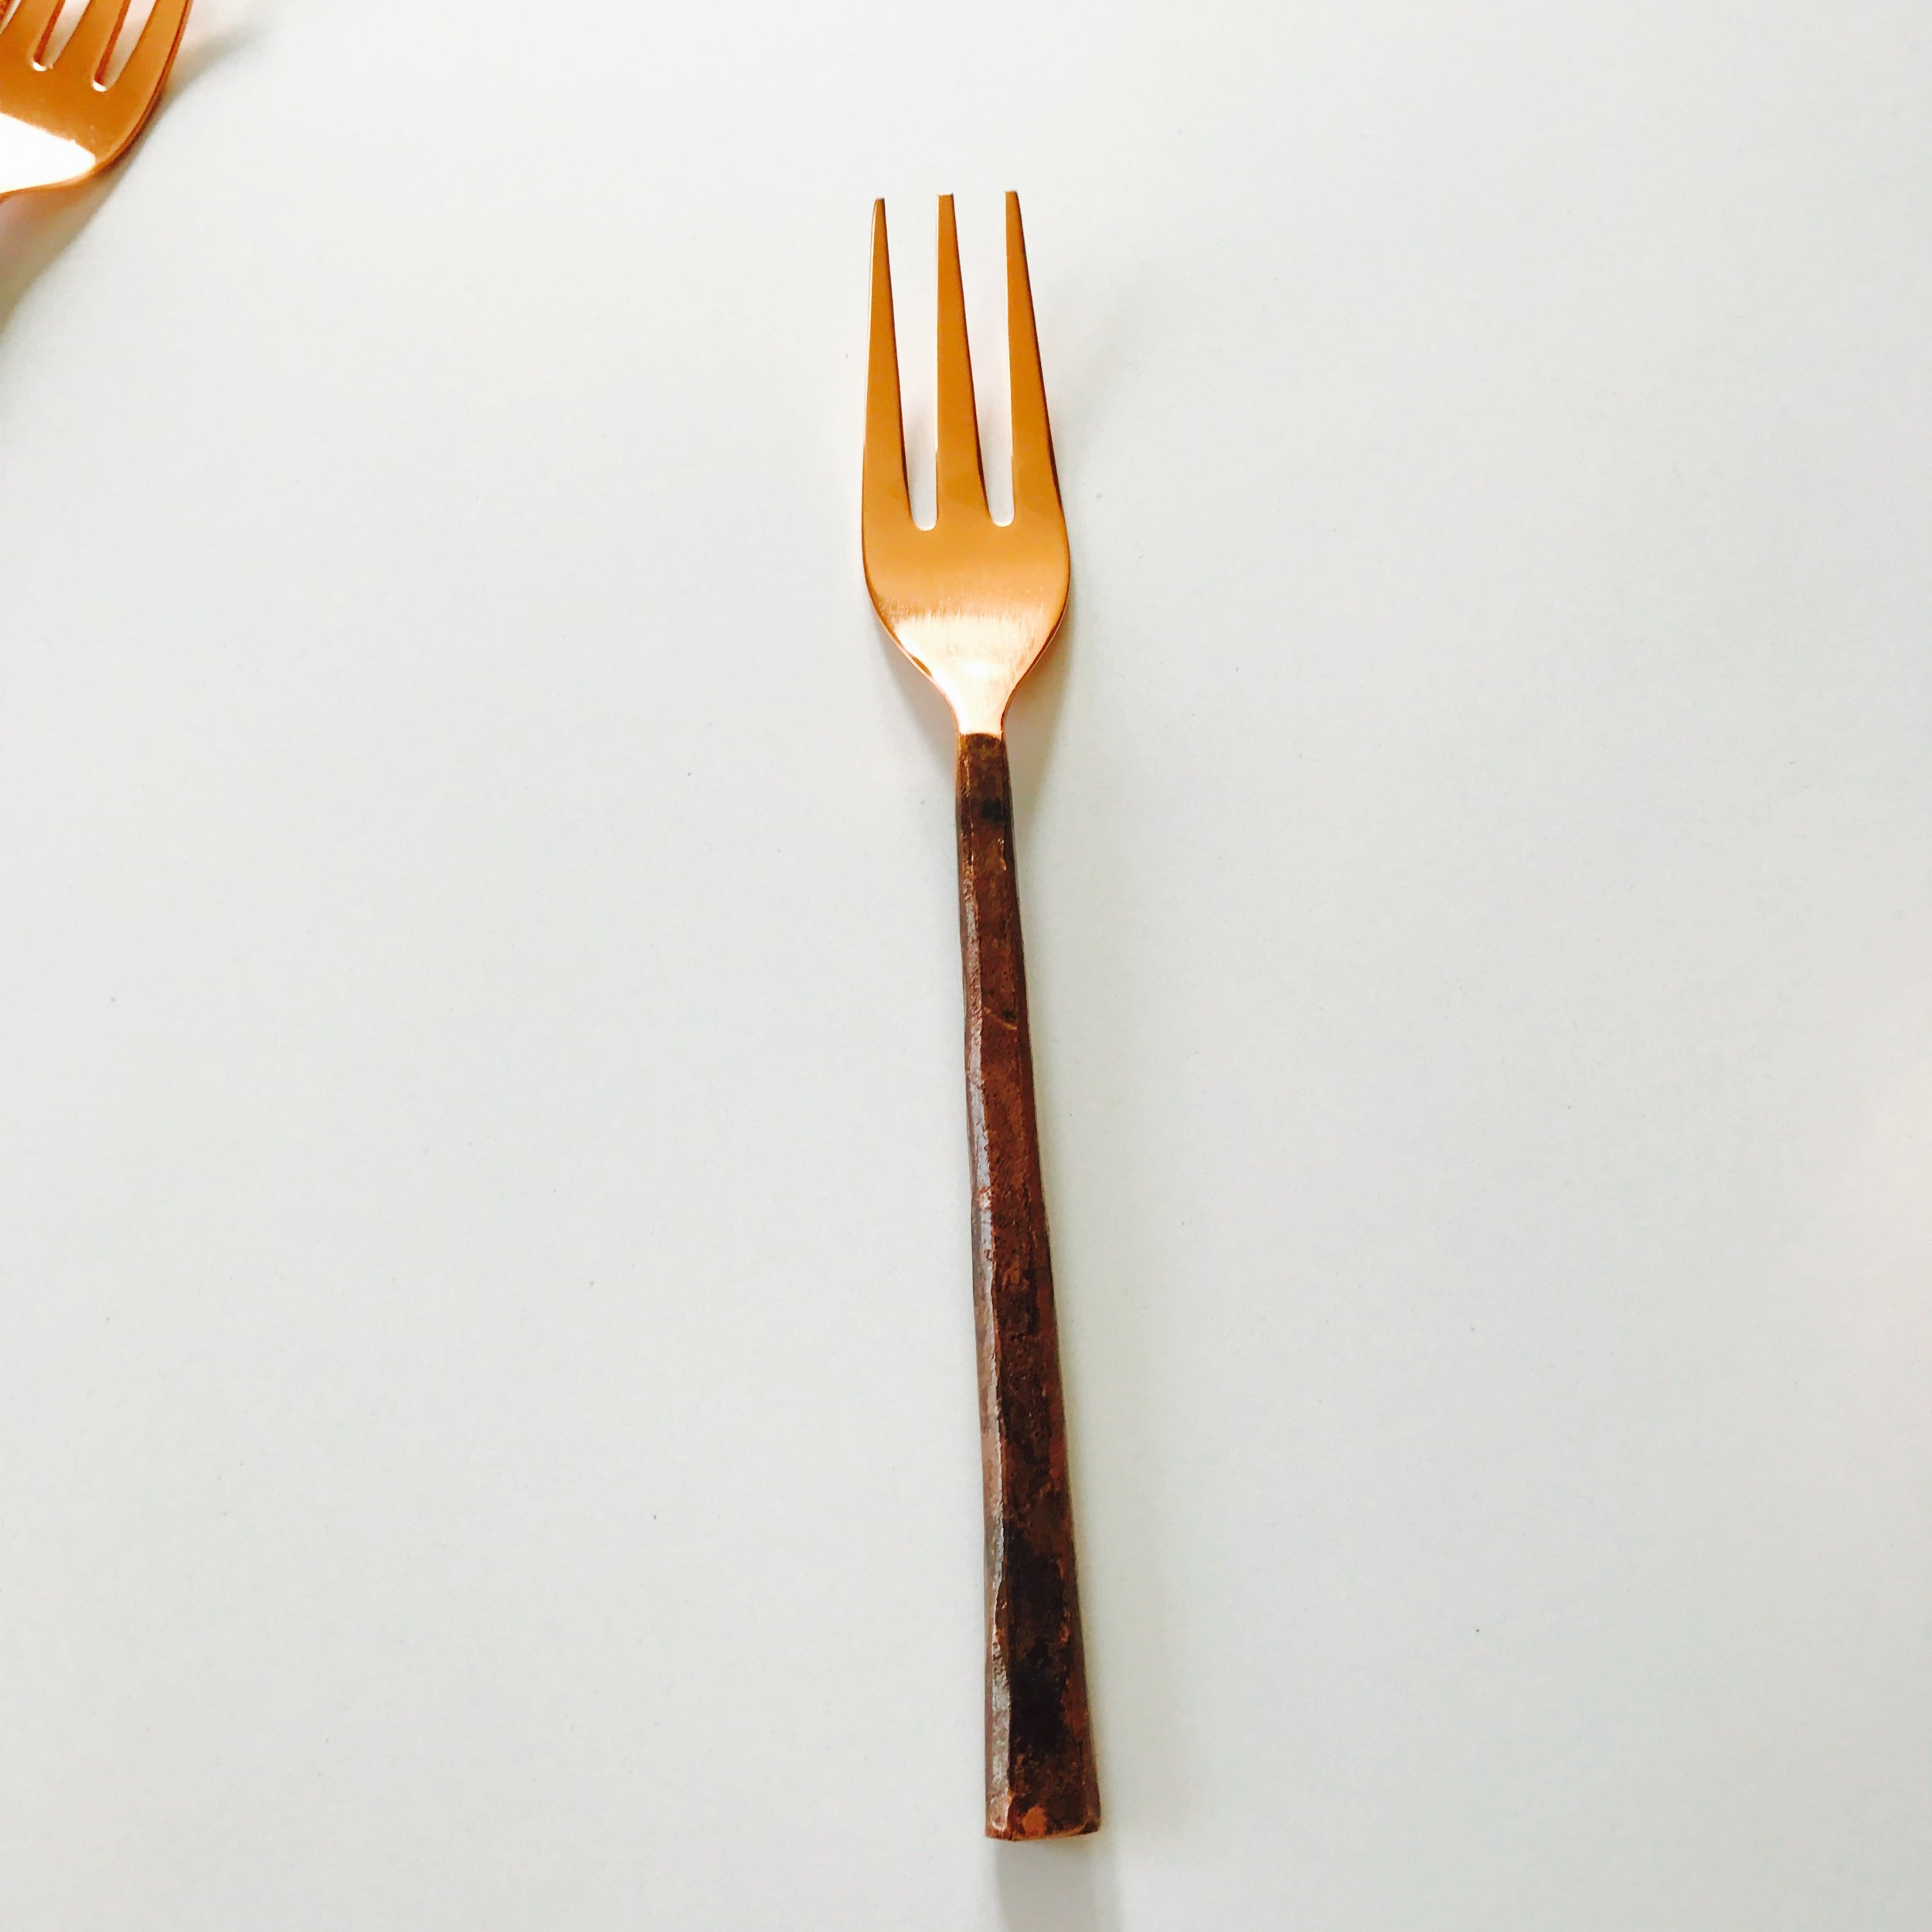 HAND-FORGED COPPER FORK. READY FOR EATING.